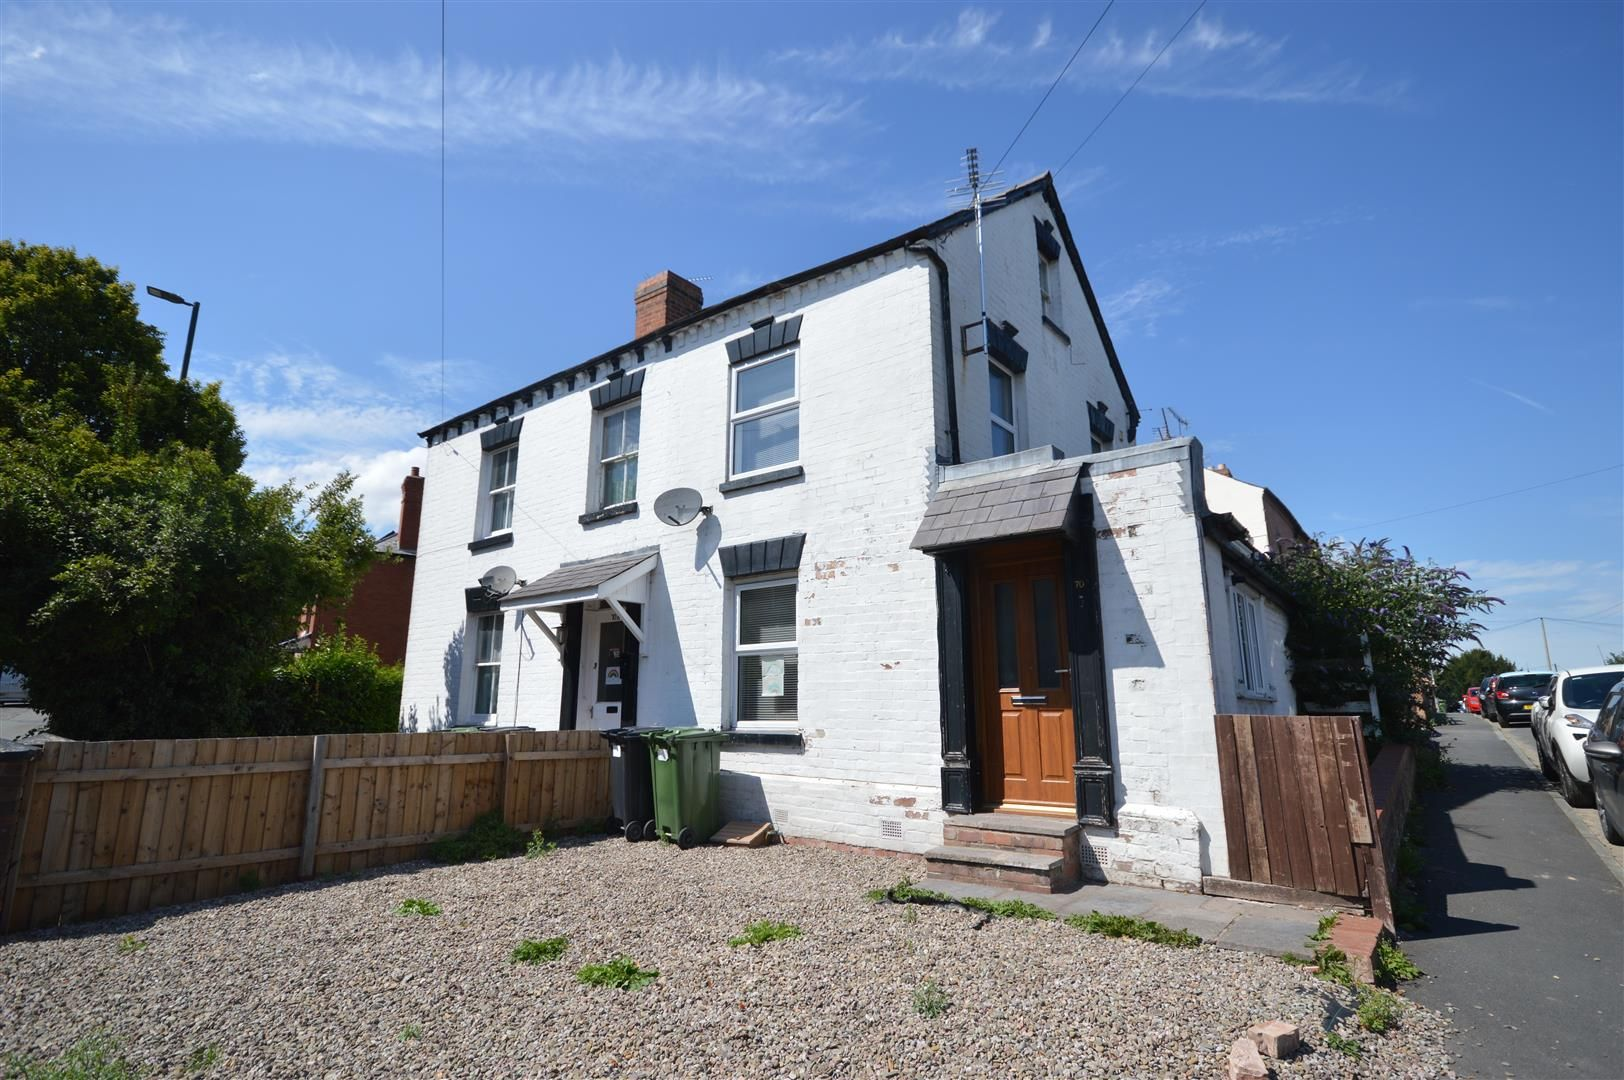 1 bed semi-detached for sale in Leominster  - Property Image 1